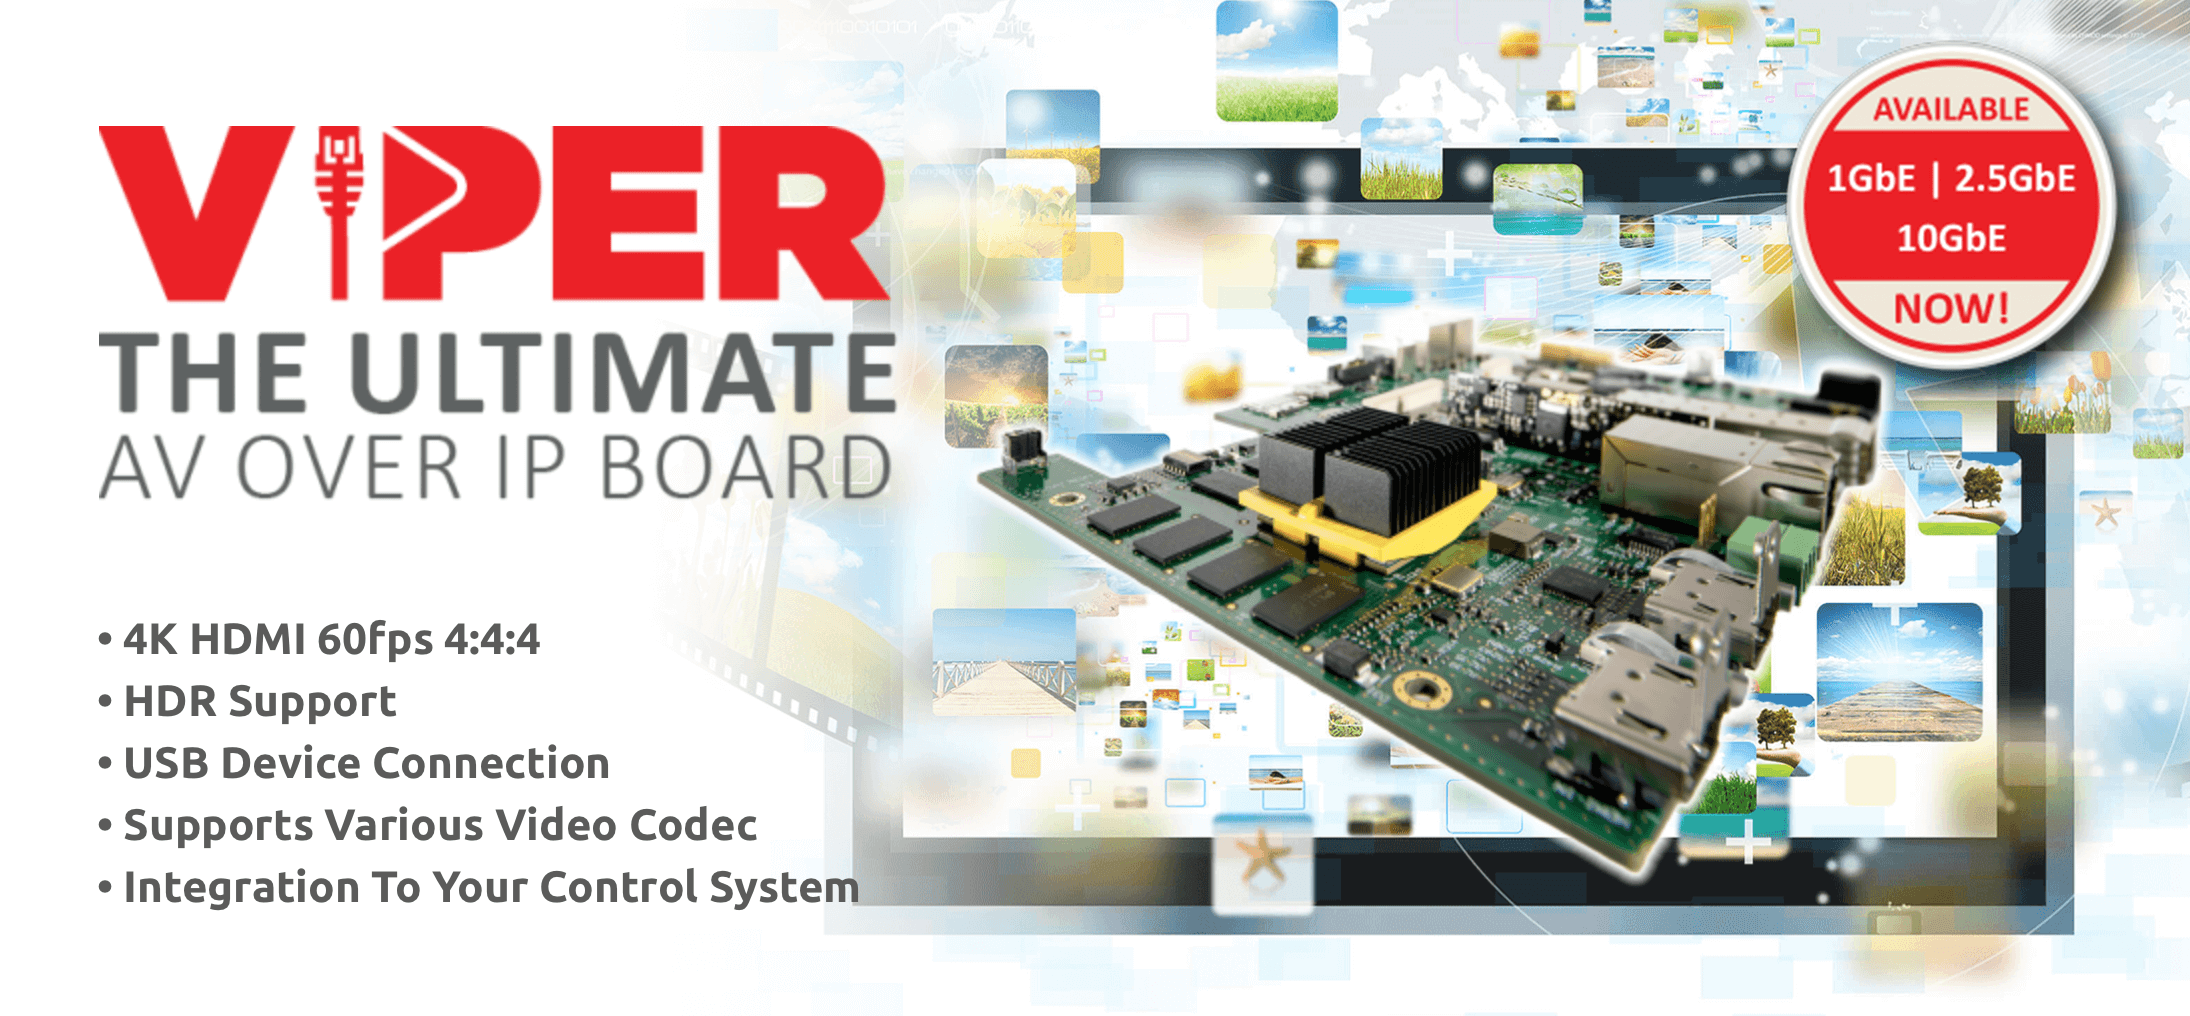 VIPER - The custom OEM board for 4K HDMI AV over IP